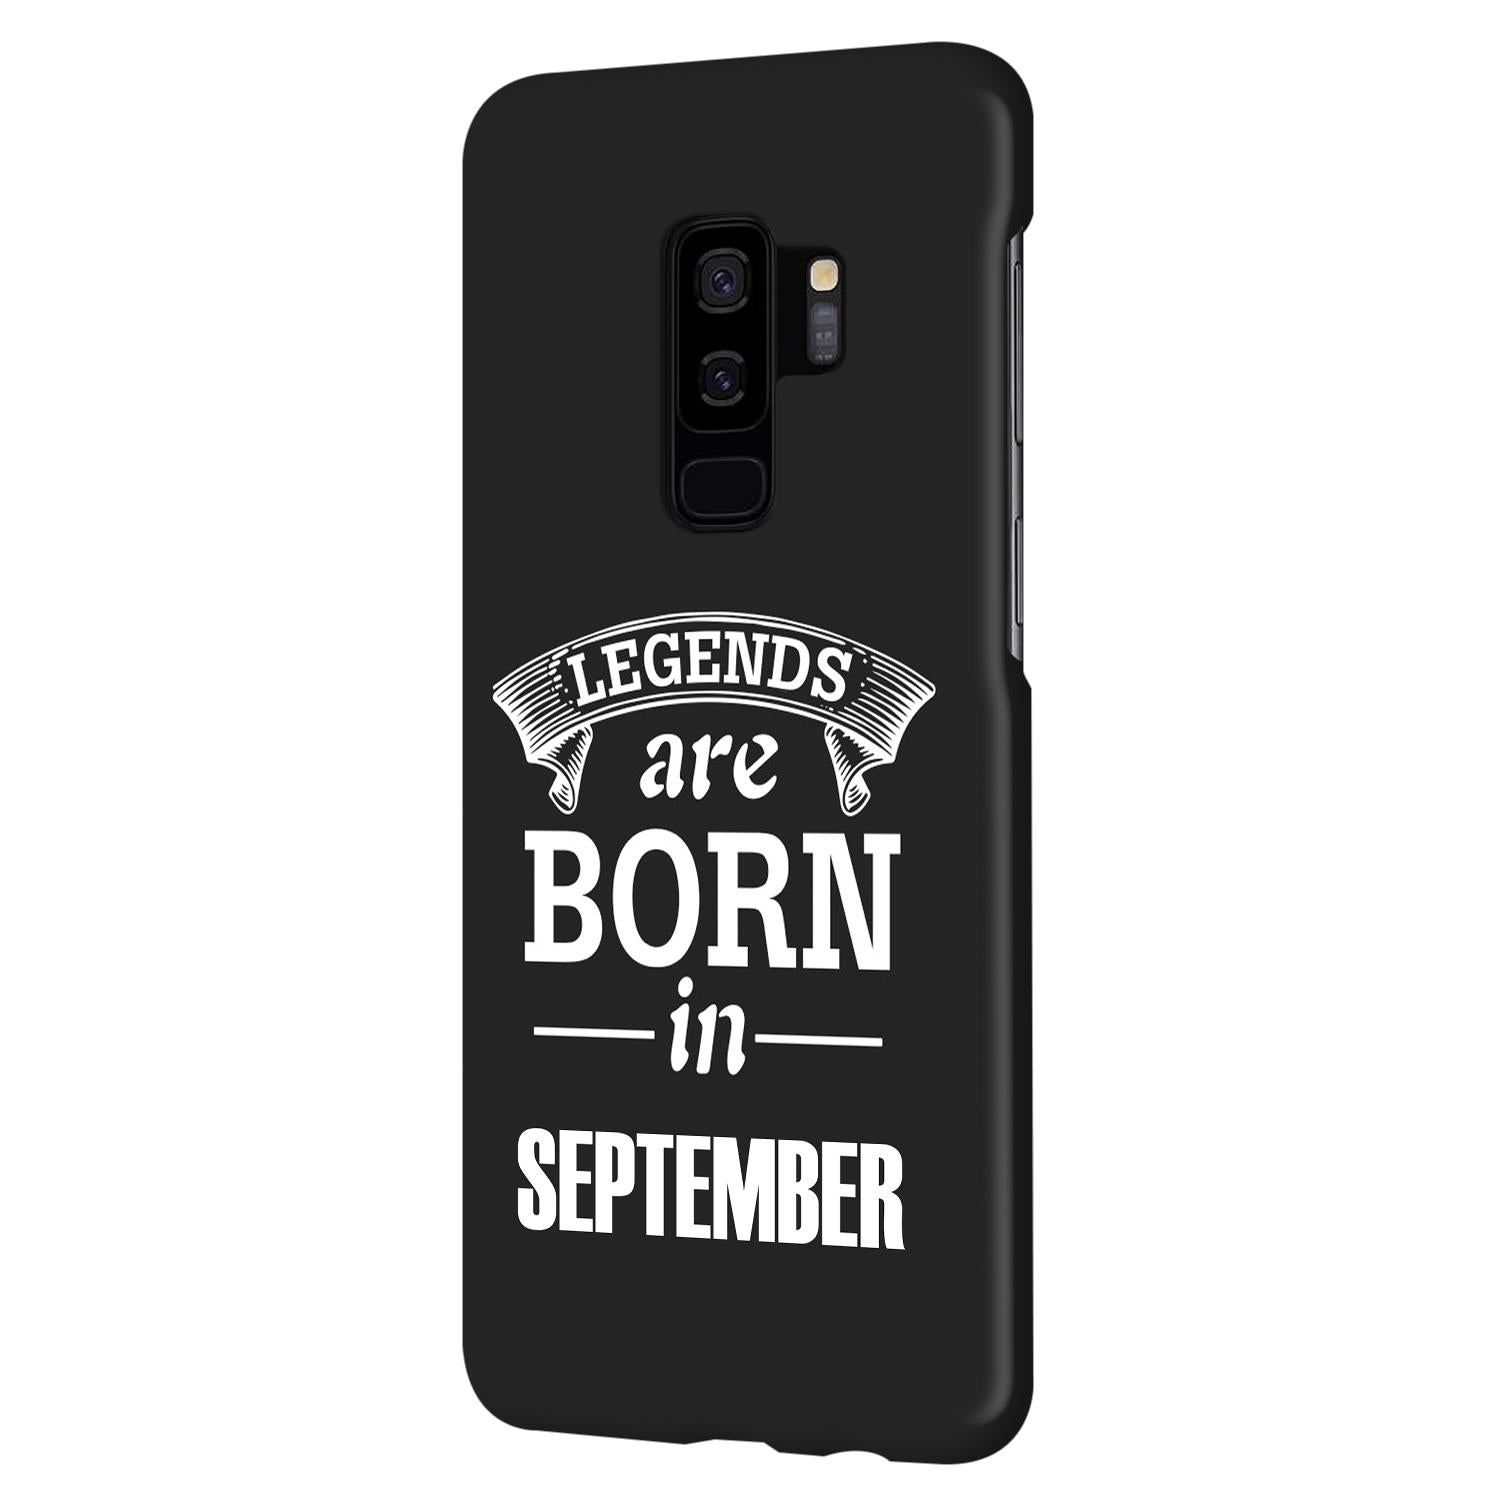 Legends September Samsung Galaxy S9 Plus Mobile Cover Case